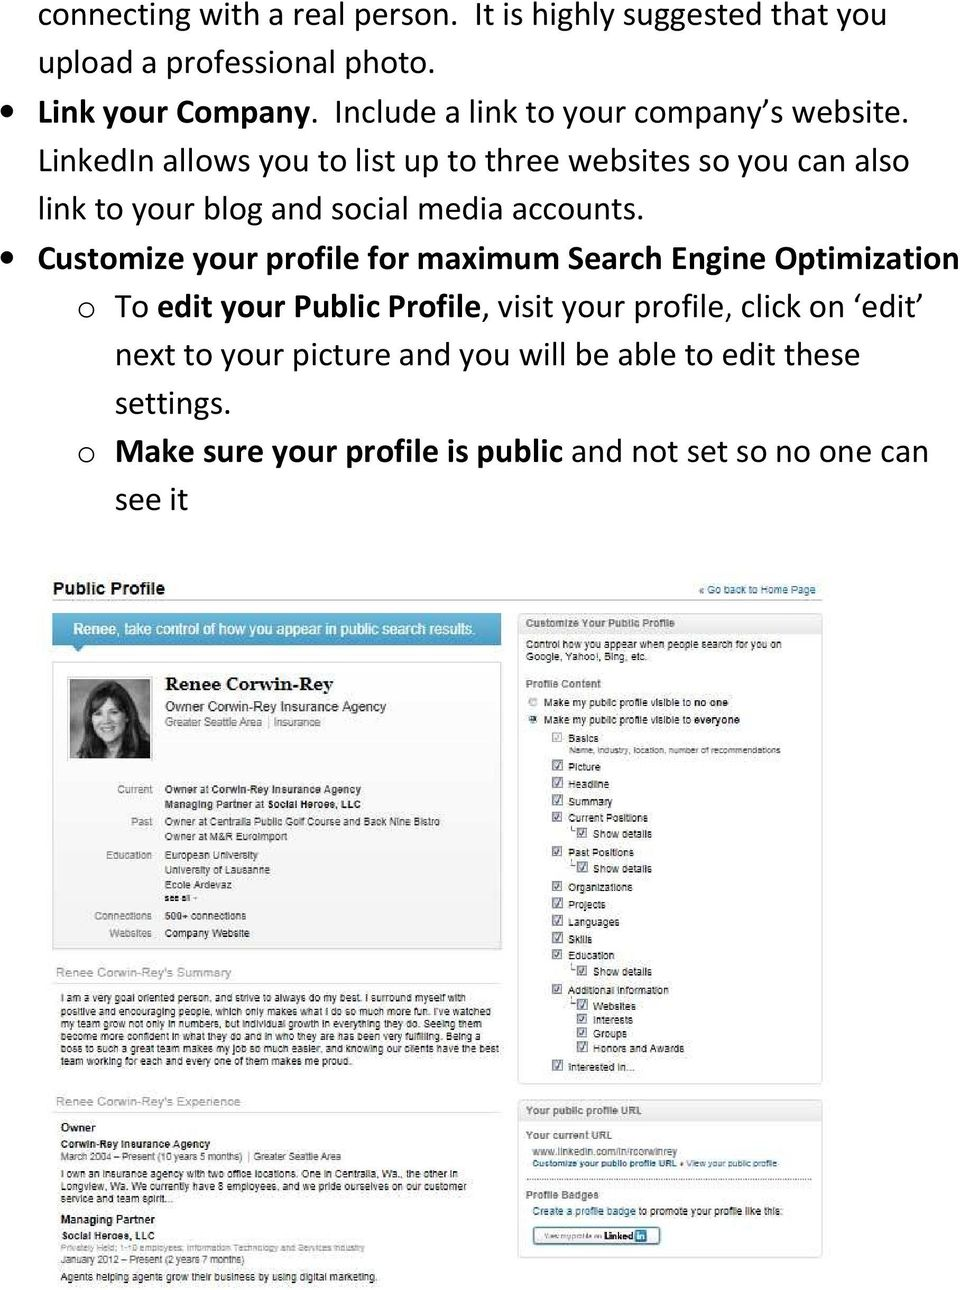 LinkedIn allows you to list up to three websites so you can also link to your blog and social media accounts.